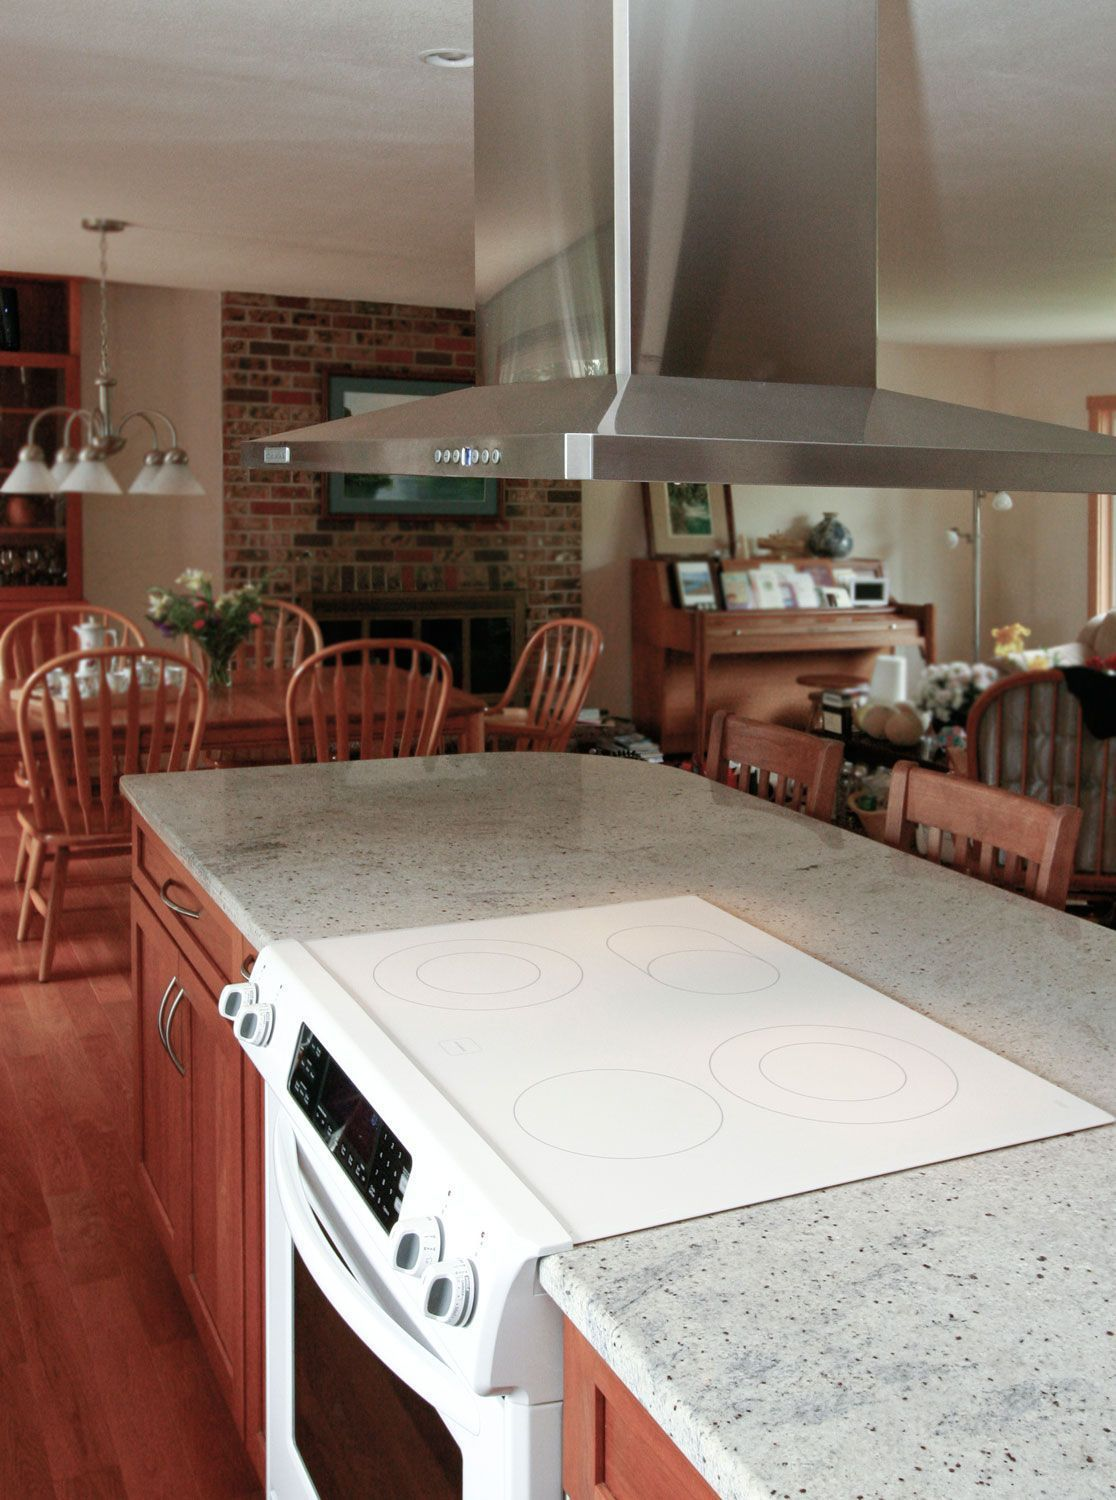 Residential kitchen remodel before and after split opened